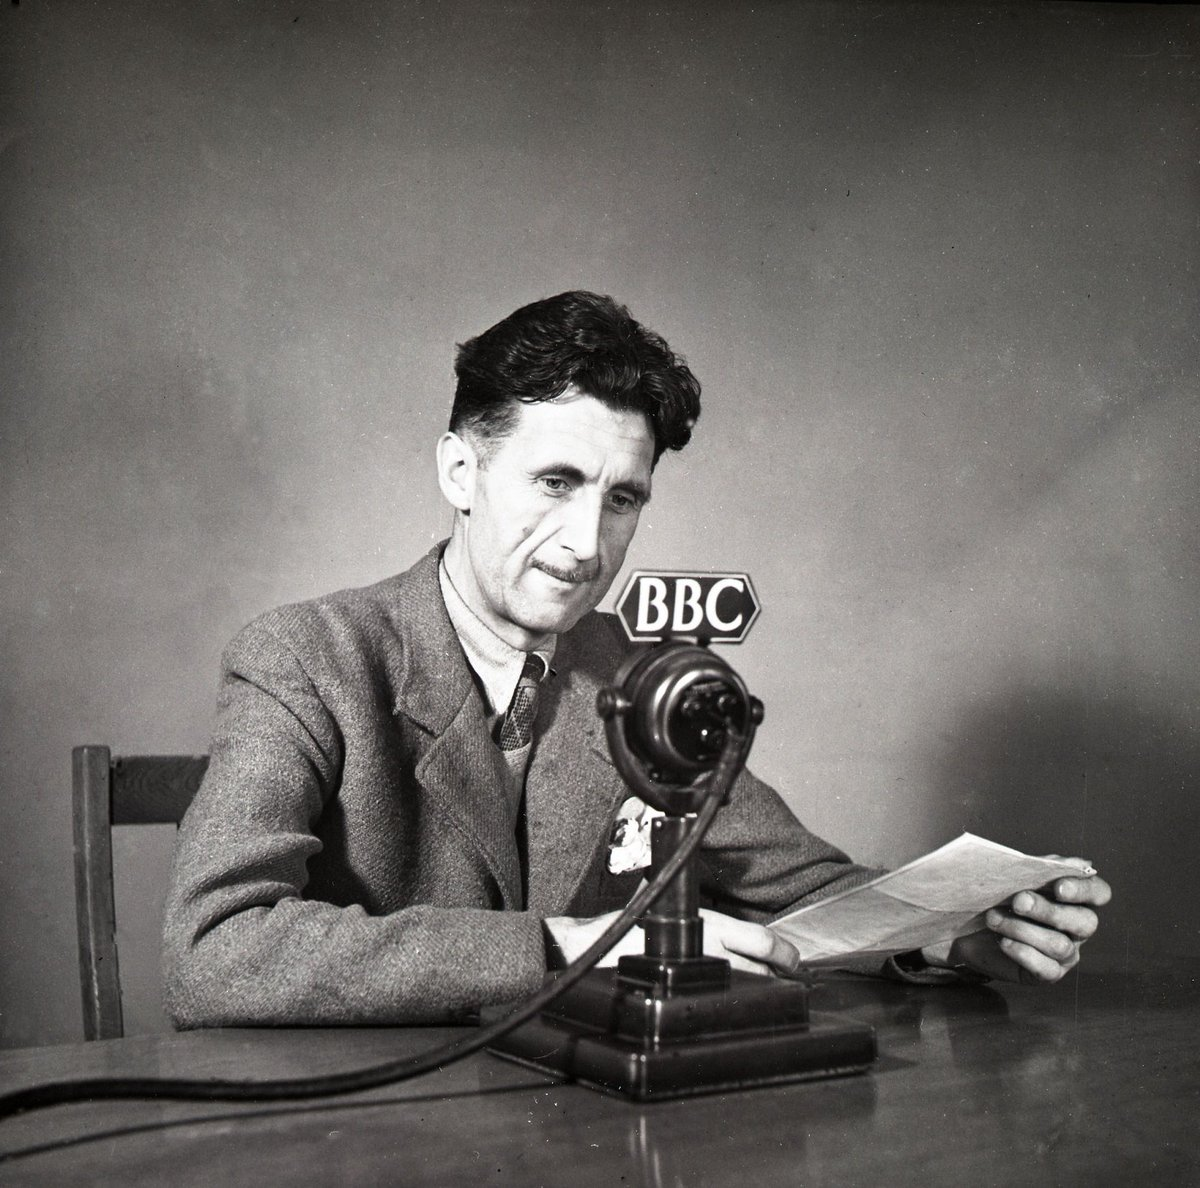 #OnThisDay 1903: George Orwell was born Eric Arthur Blair in Motihari. He is pictured here in 1943.